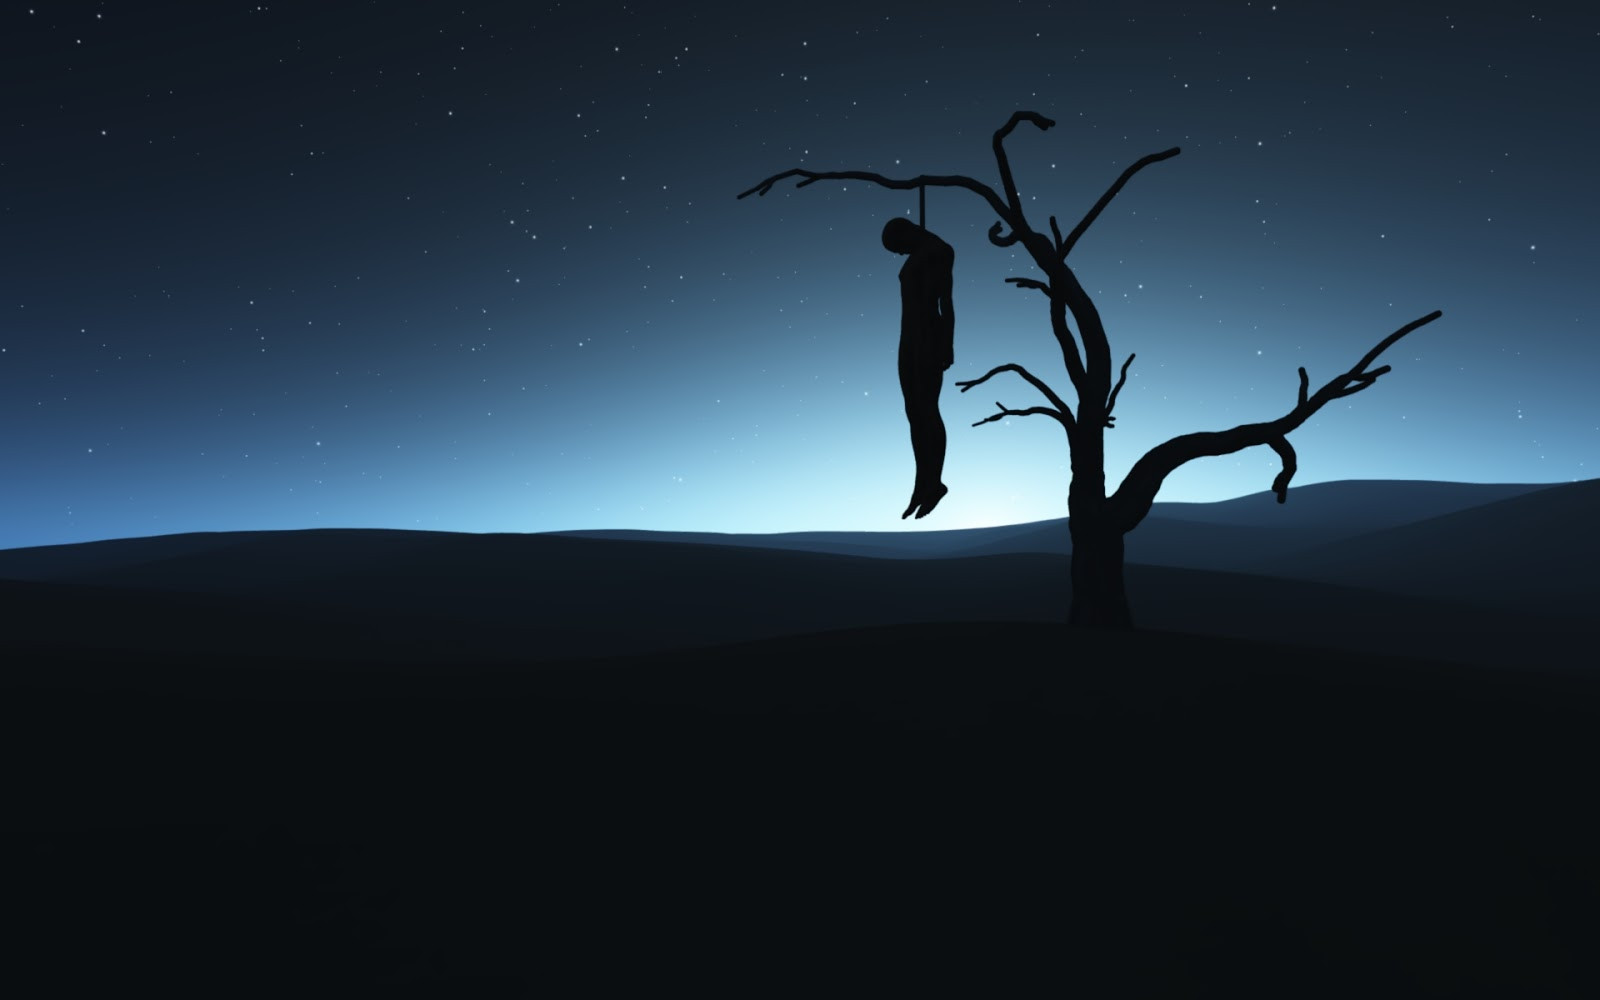 84-year-old man commits suicide in Enugu